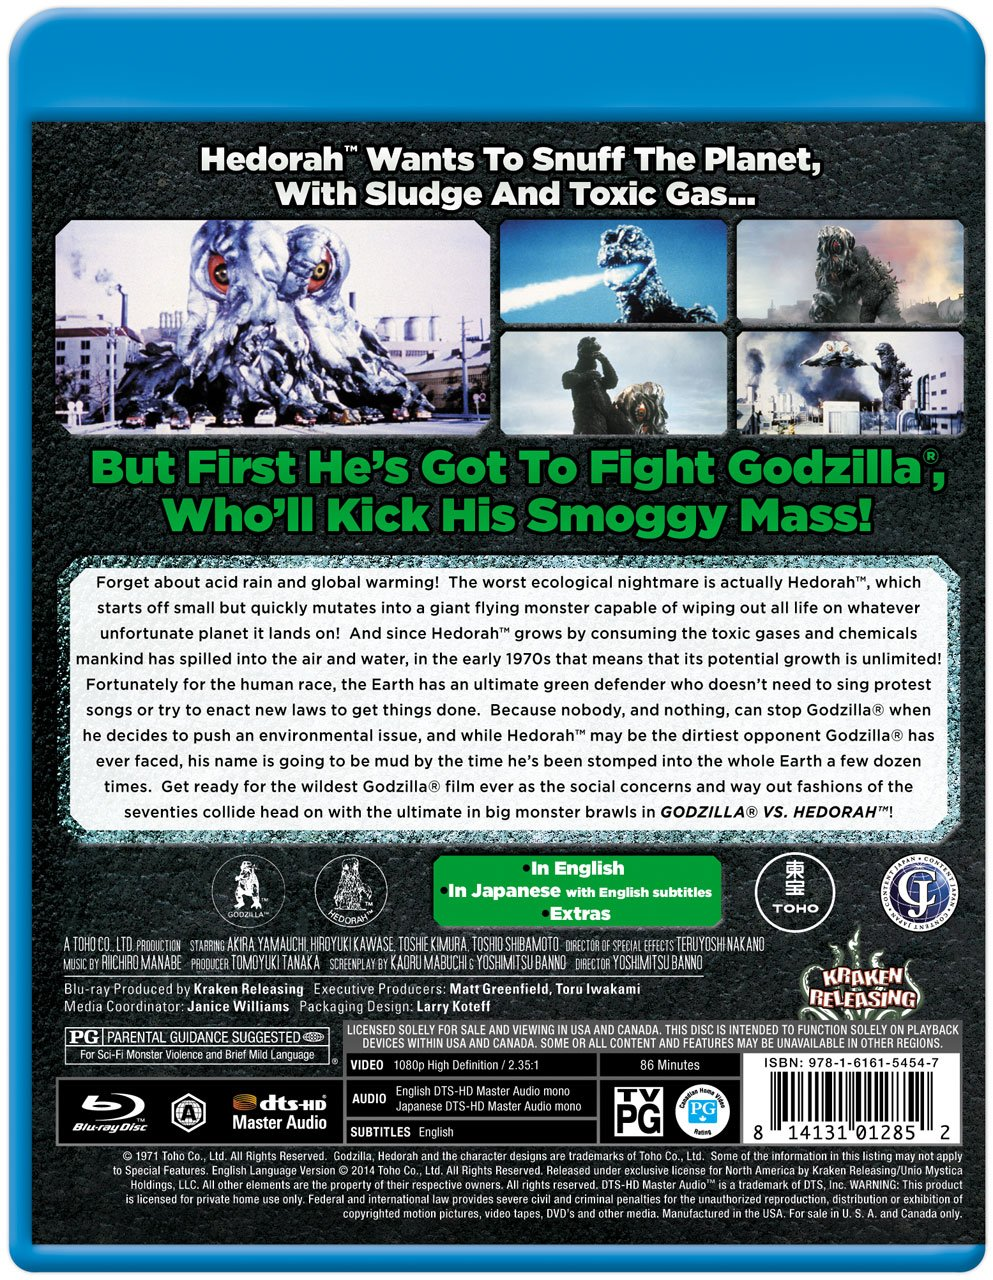 Godzilla Vs. Hedorah [Blu-ray] by Section 23